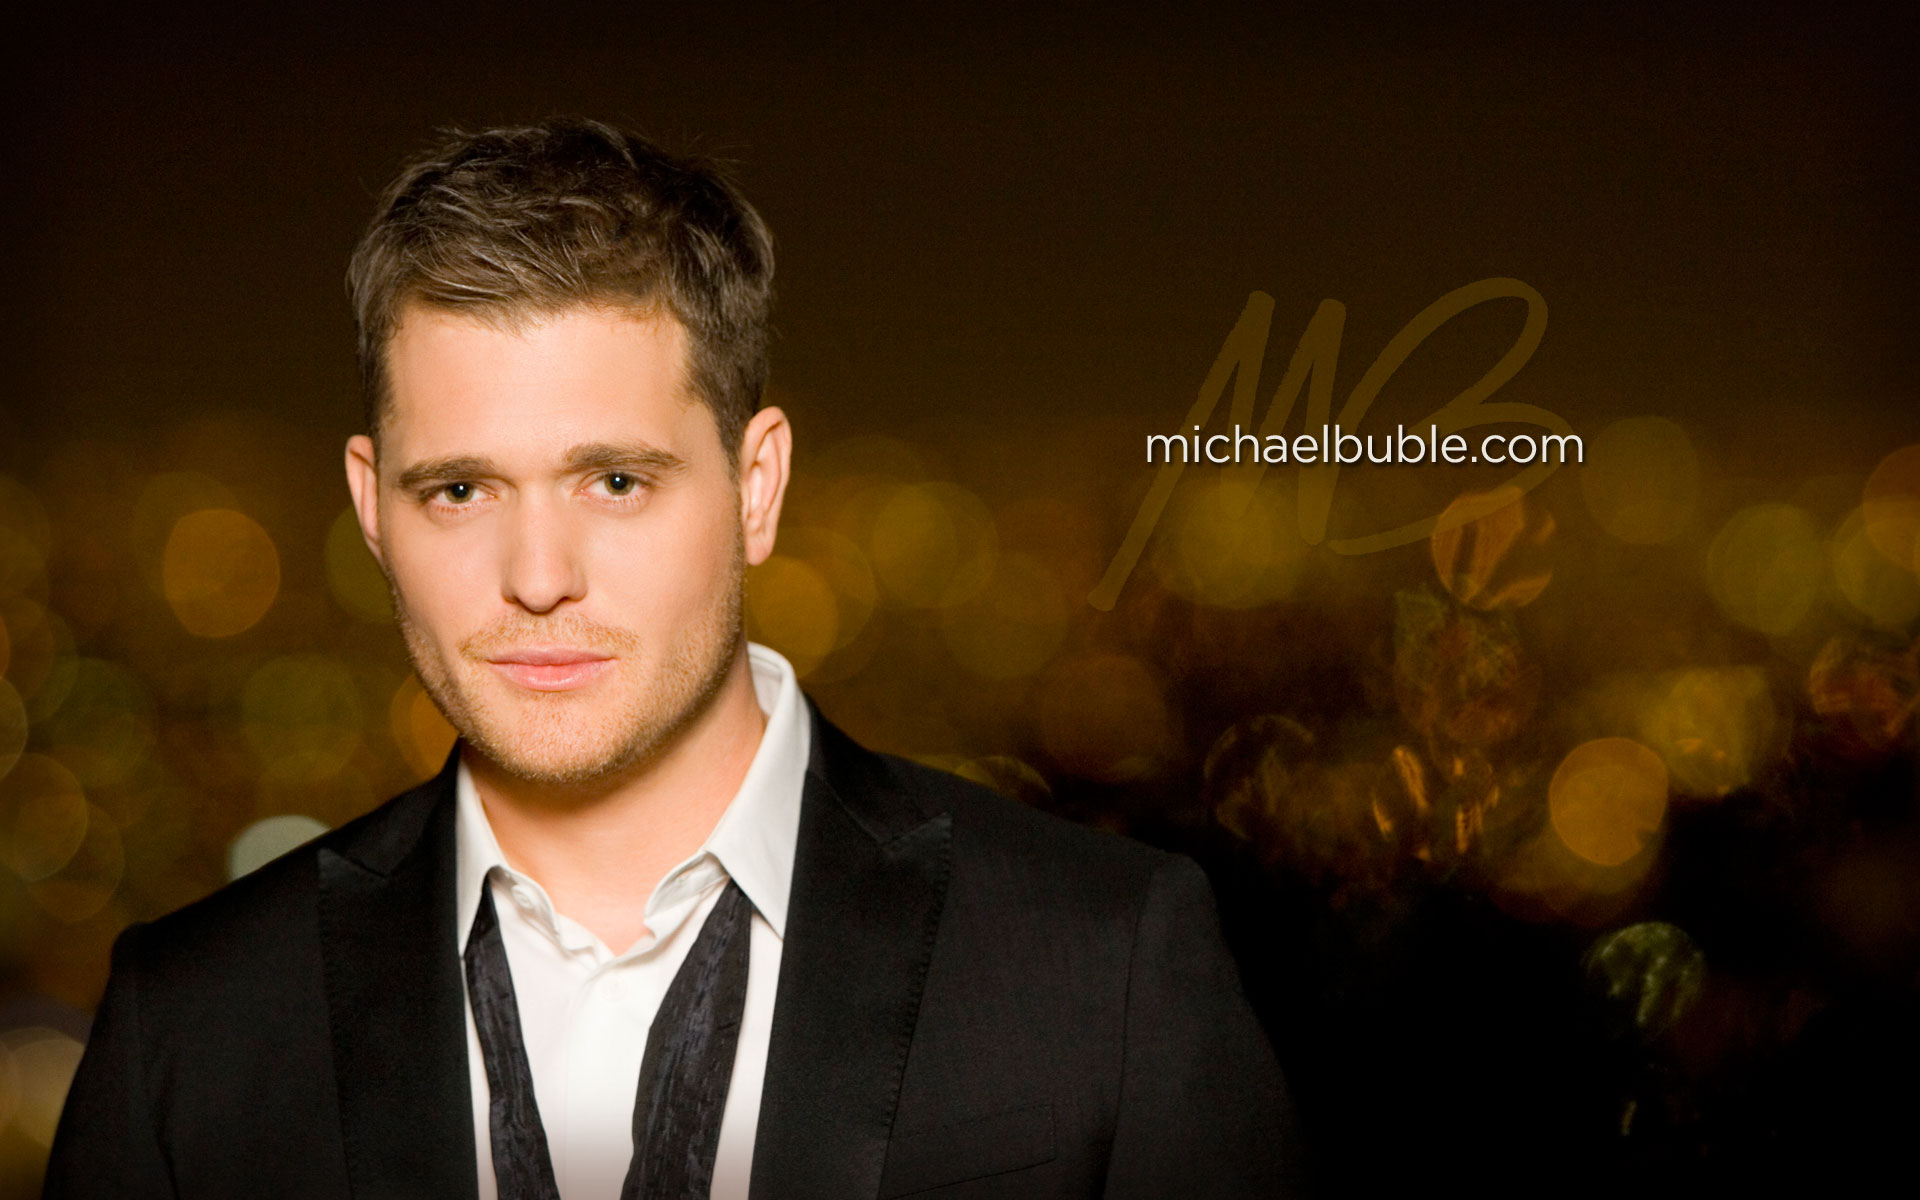 http://www.danielleford.com/wp-content/uploads/2011/04/Michael_Buble.jpg